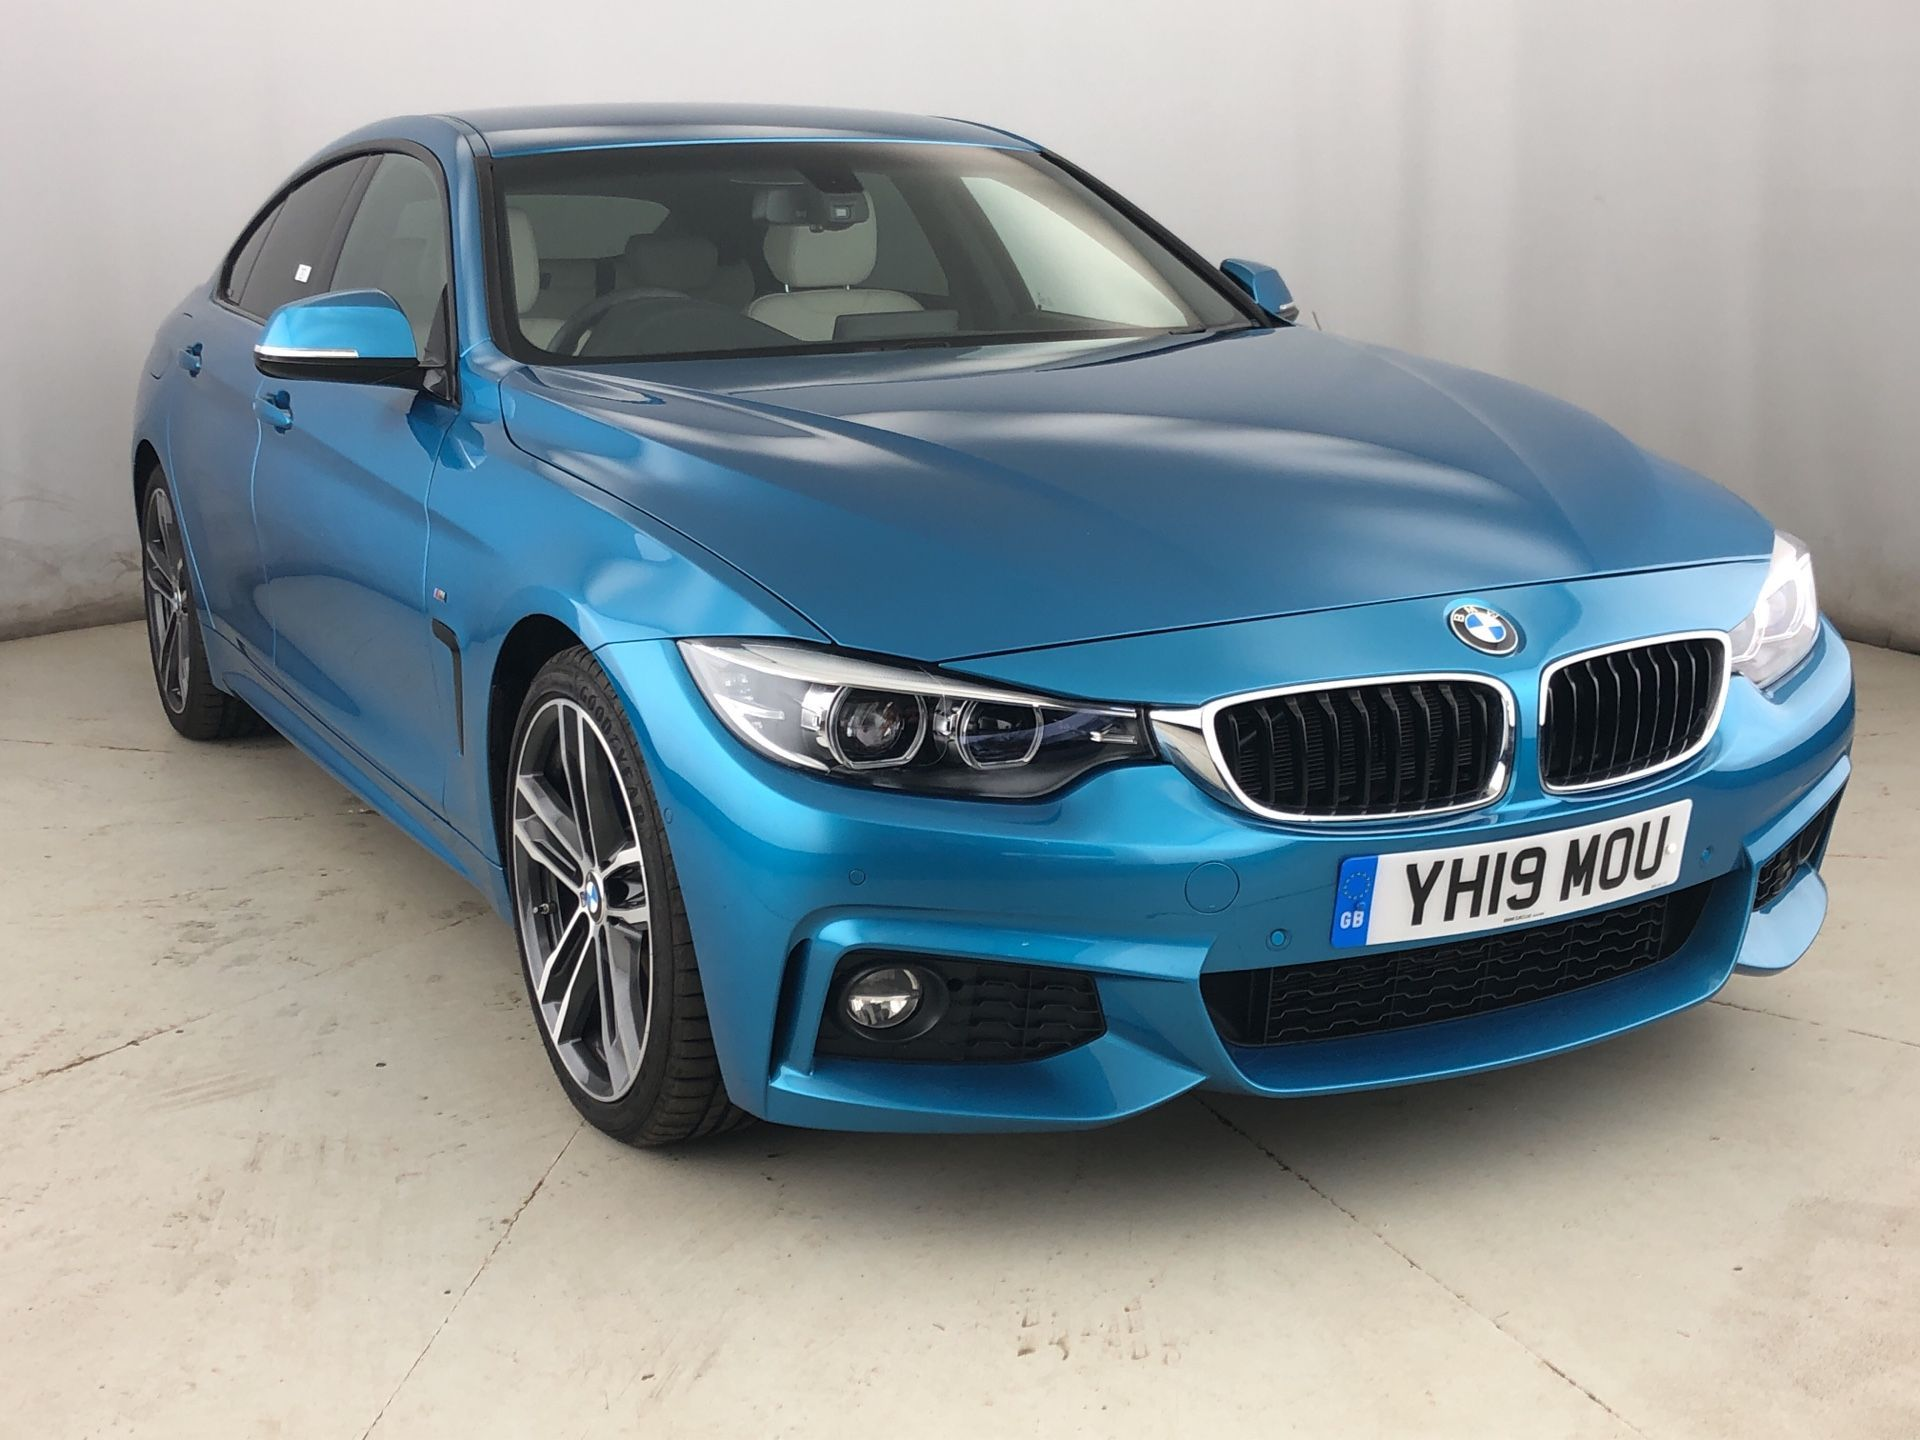 Image 1 - BMW 420i M Sport Gran Coupe (YH19MOU)